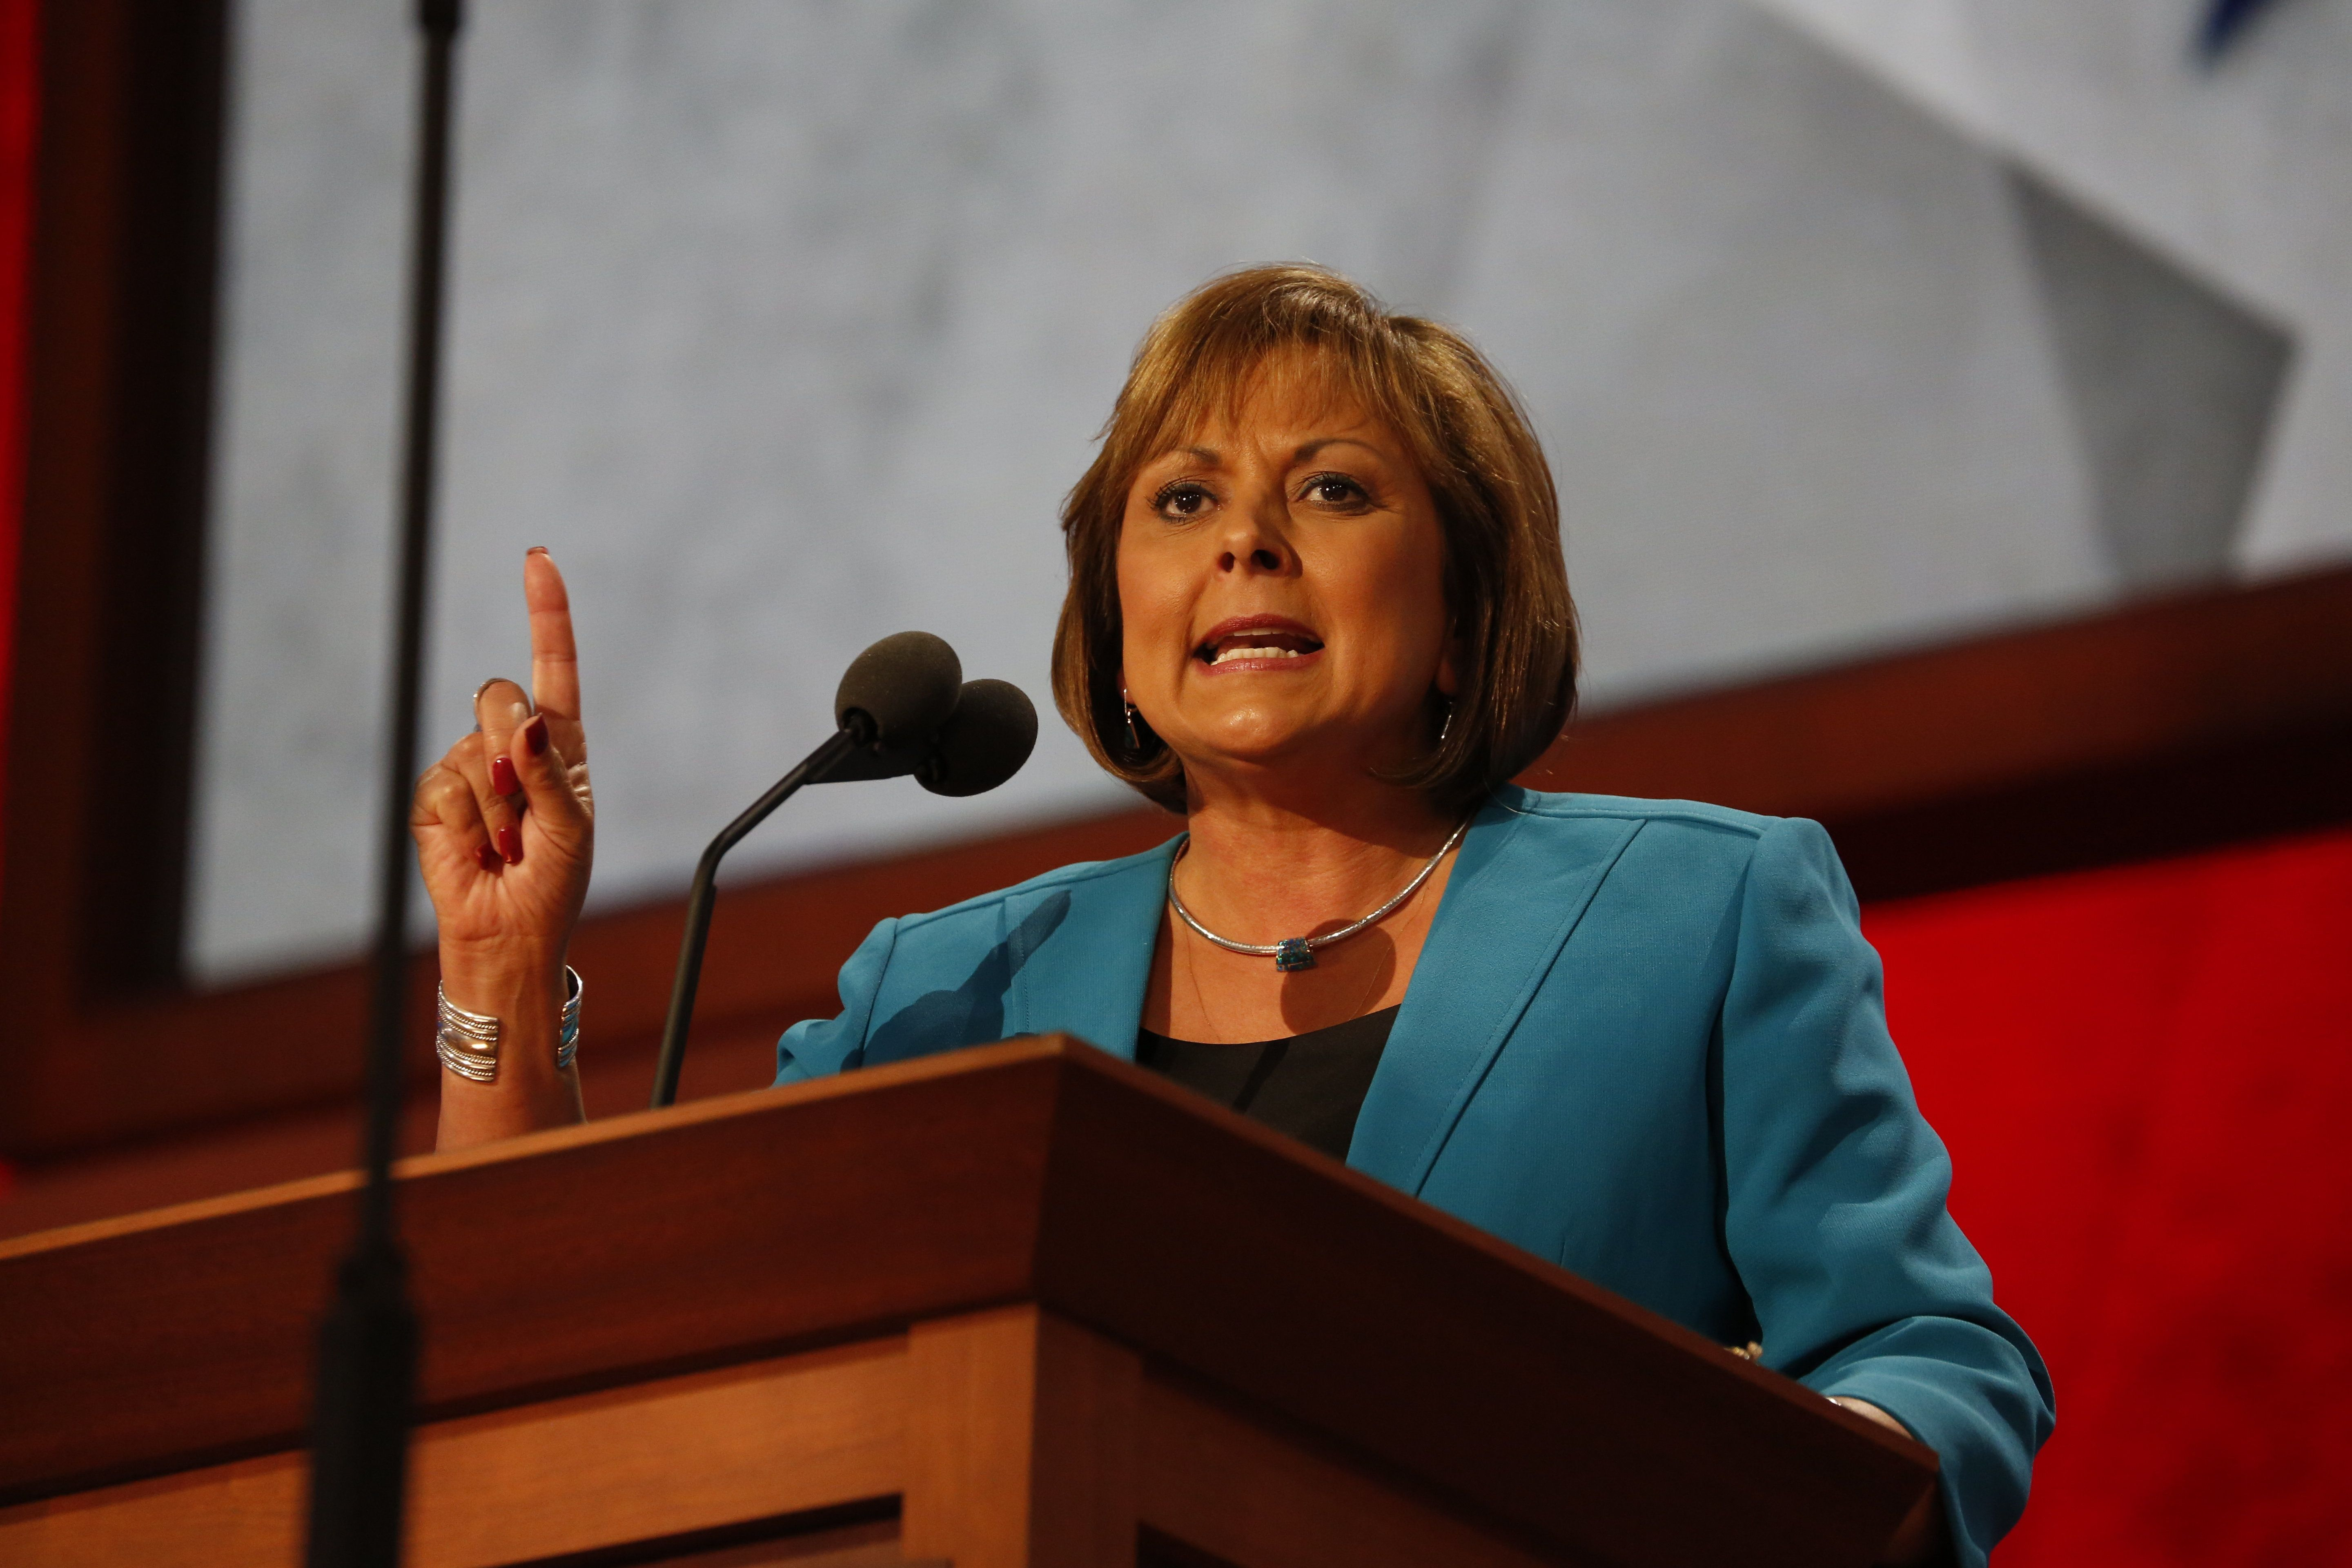 New Mexico Gov. Susana Martinez (R) has touted progress the state's public education system has made under her administration